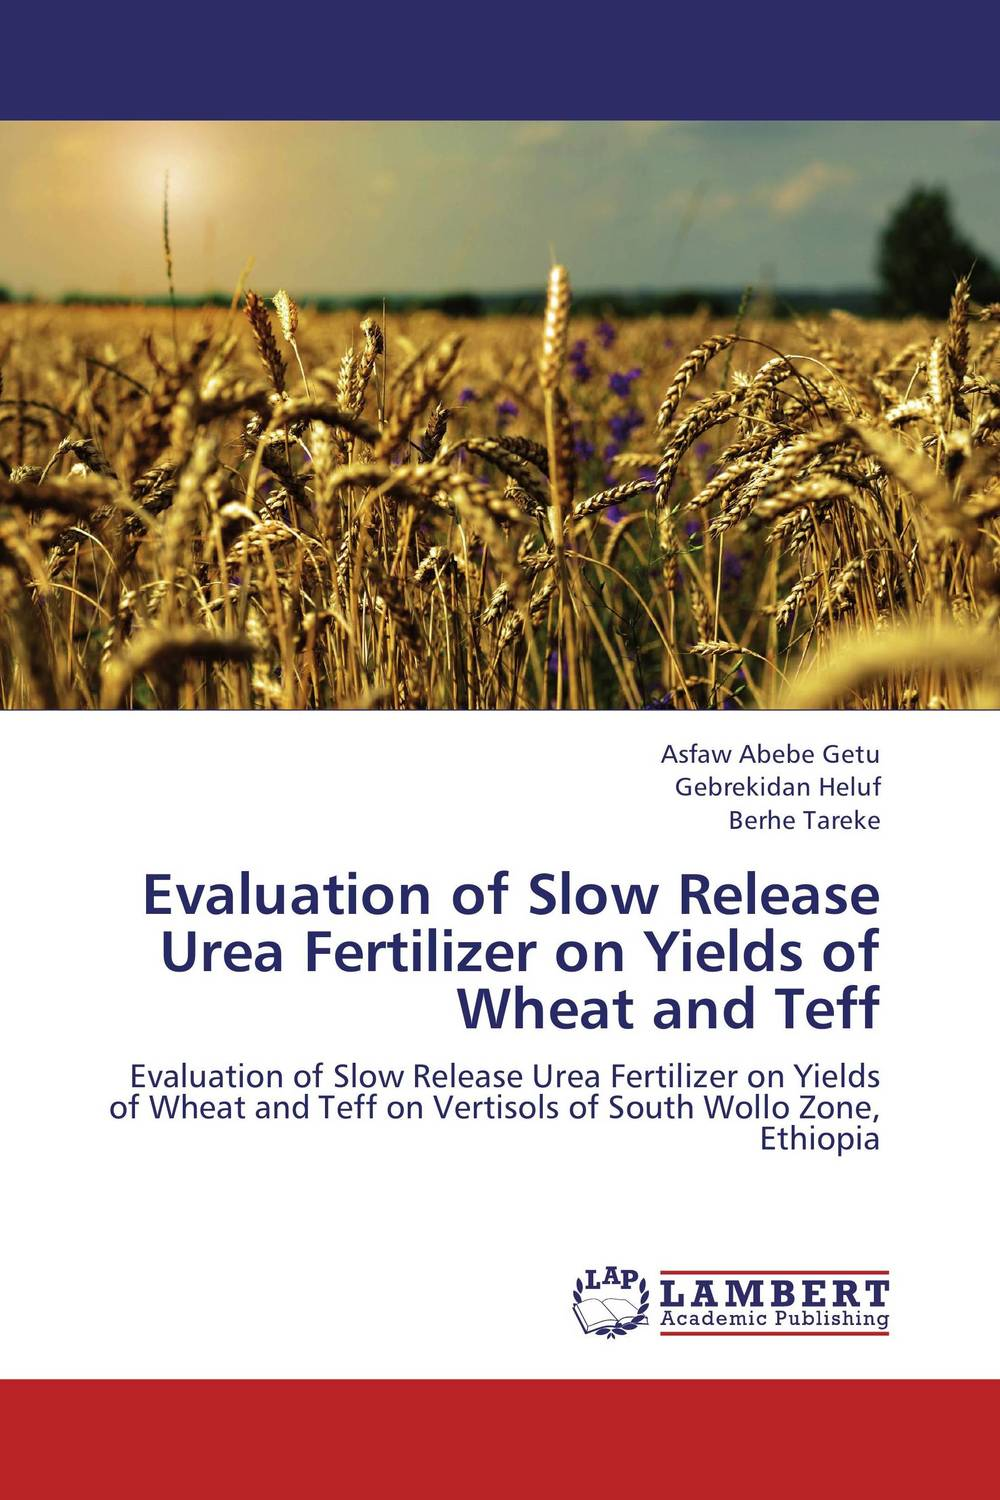 Evaluation of Slow Release Urea Fertilizer on Yields of Wheat and Teff ibanez 1000pgjb paul gilbert pick